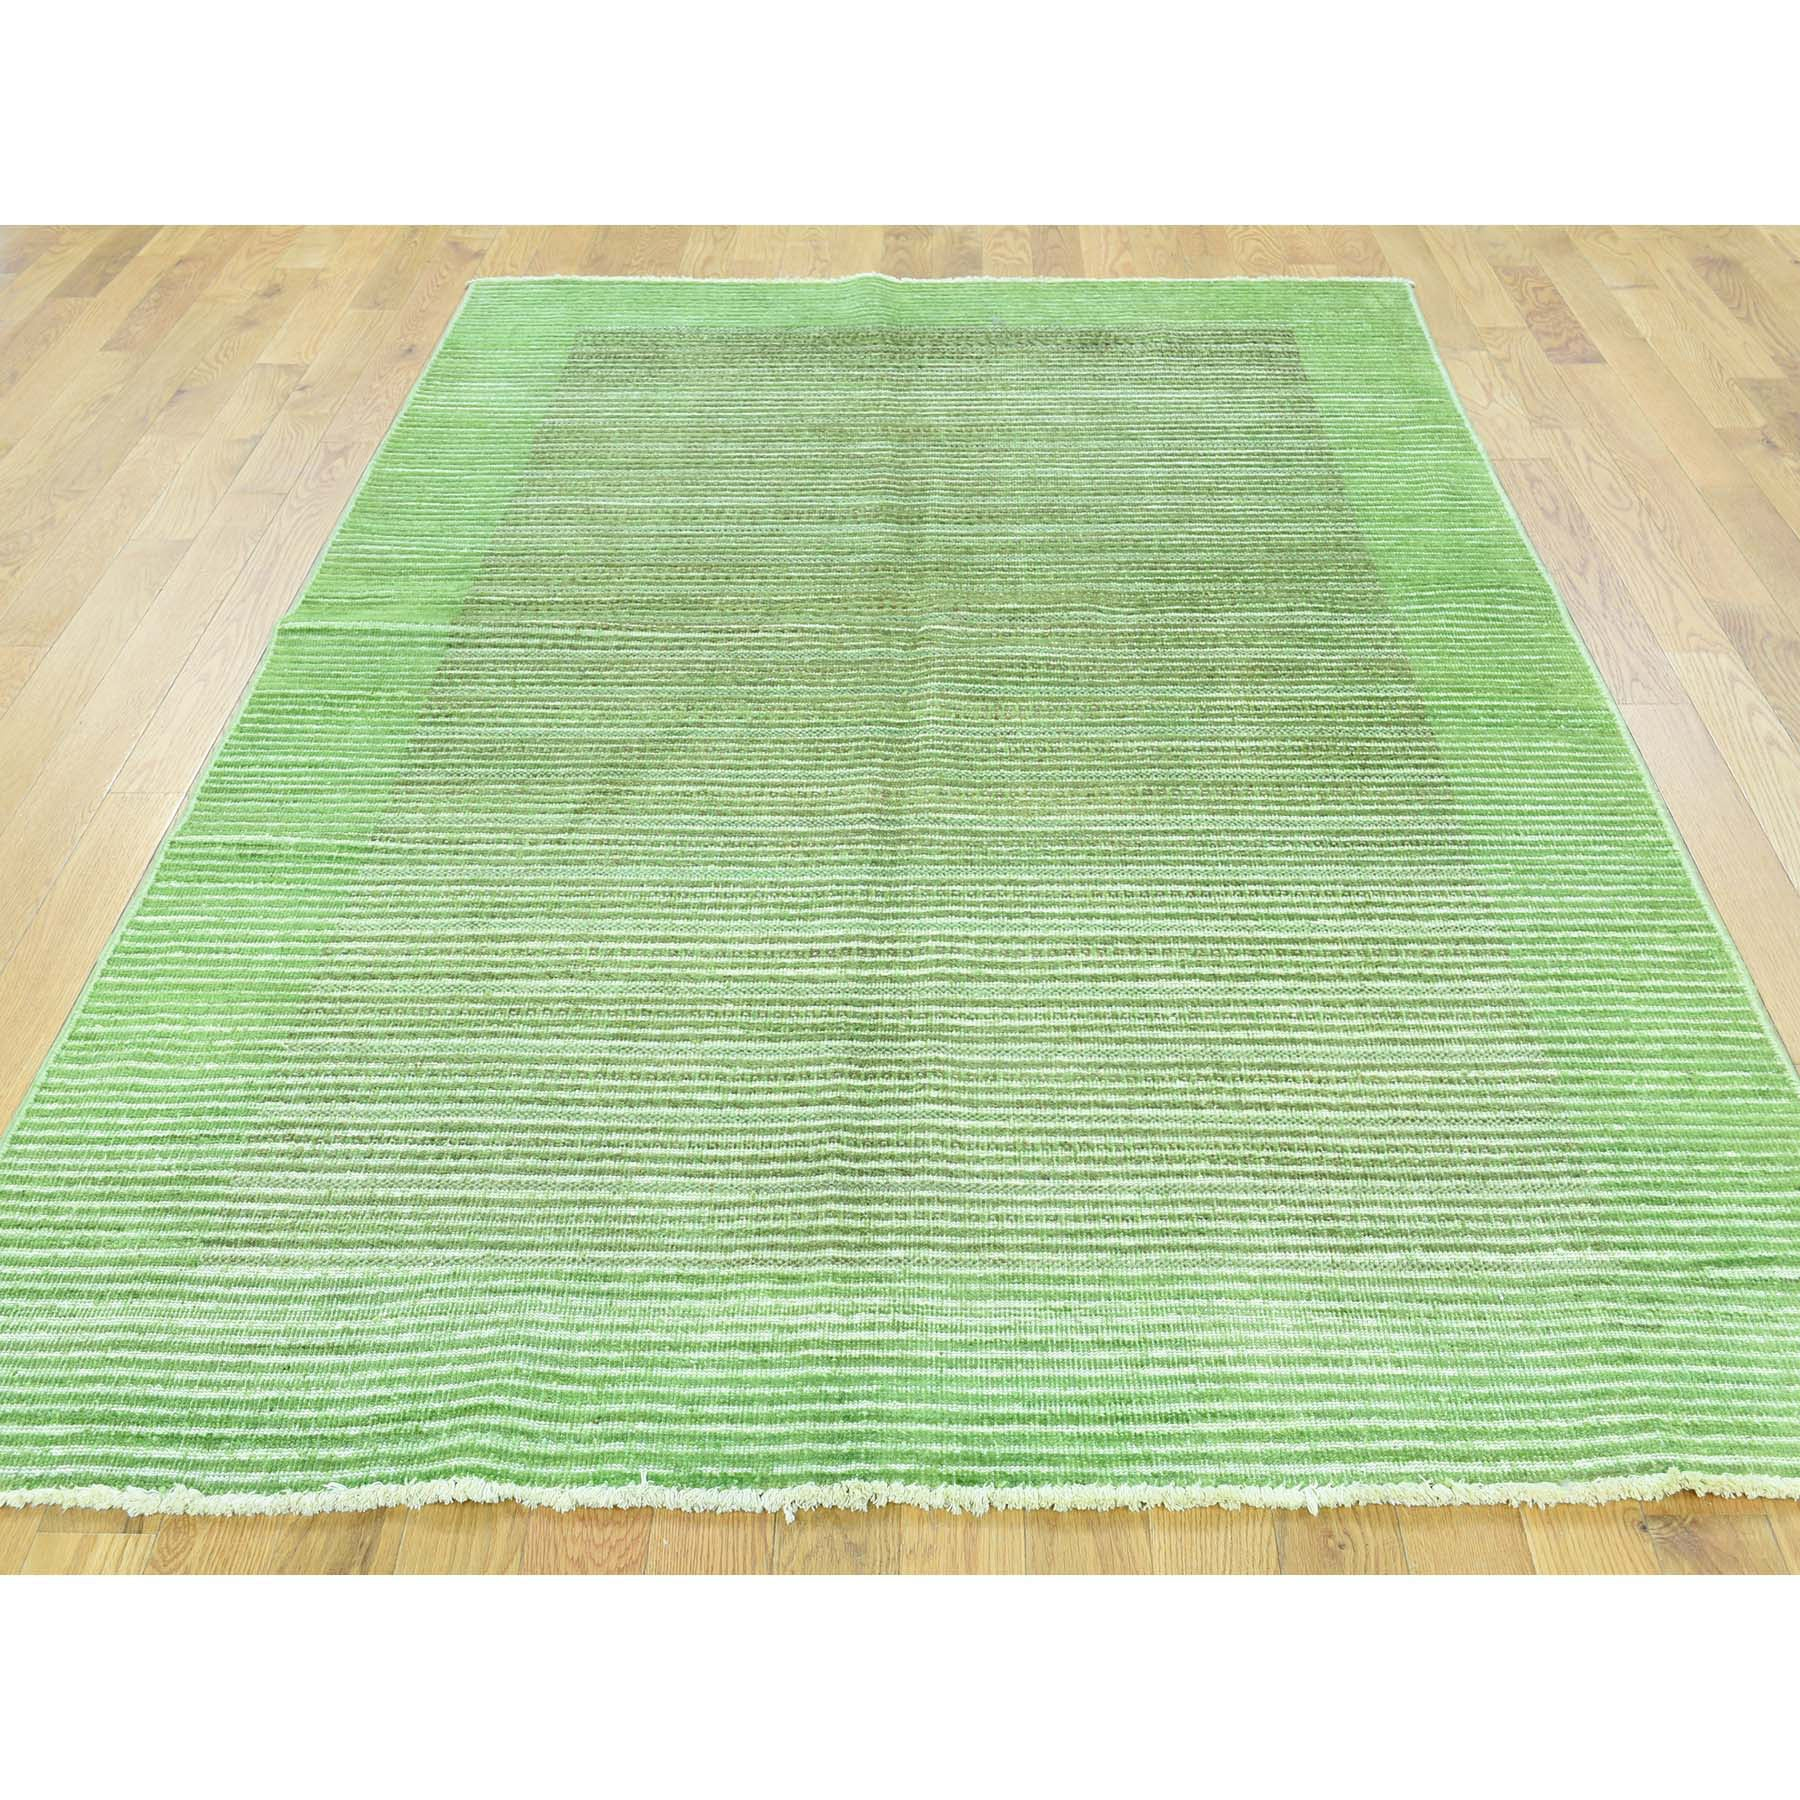 "Handmade Overdyed & Vintage Rectangle Rug > Design# SH31986 > Size: 5'-0"" x 8'-0"" [ONLINE ONLY]"